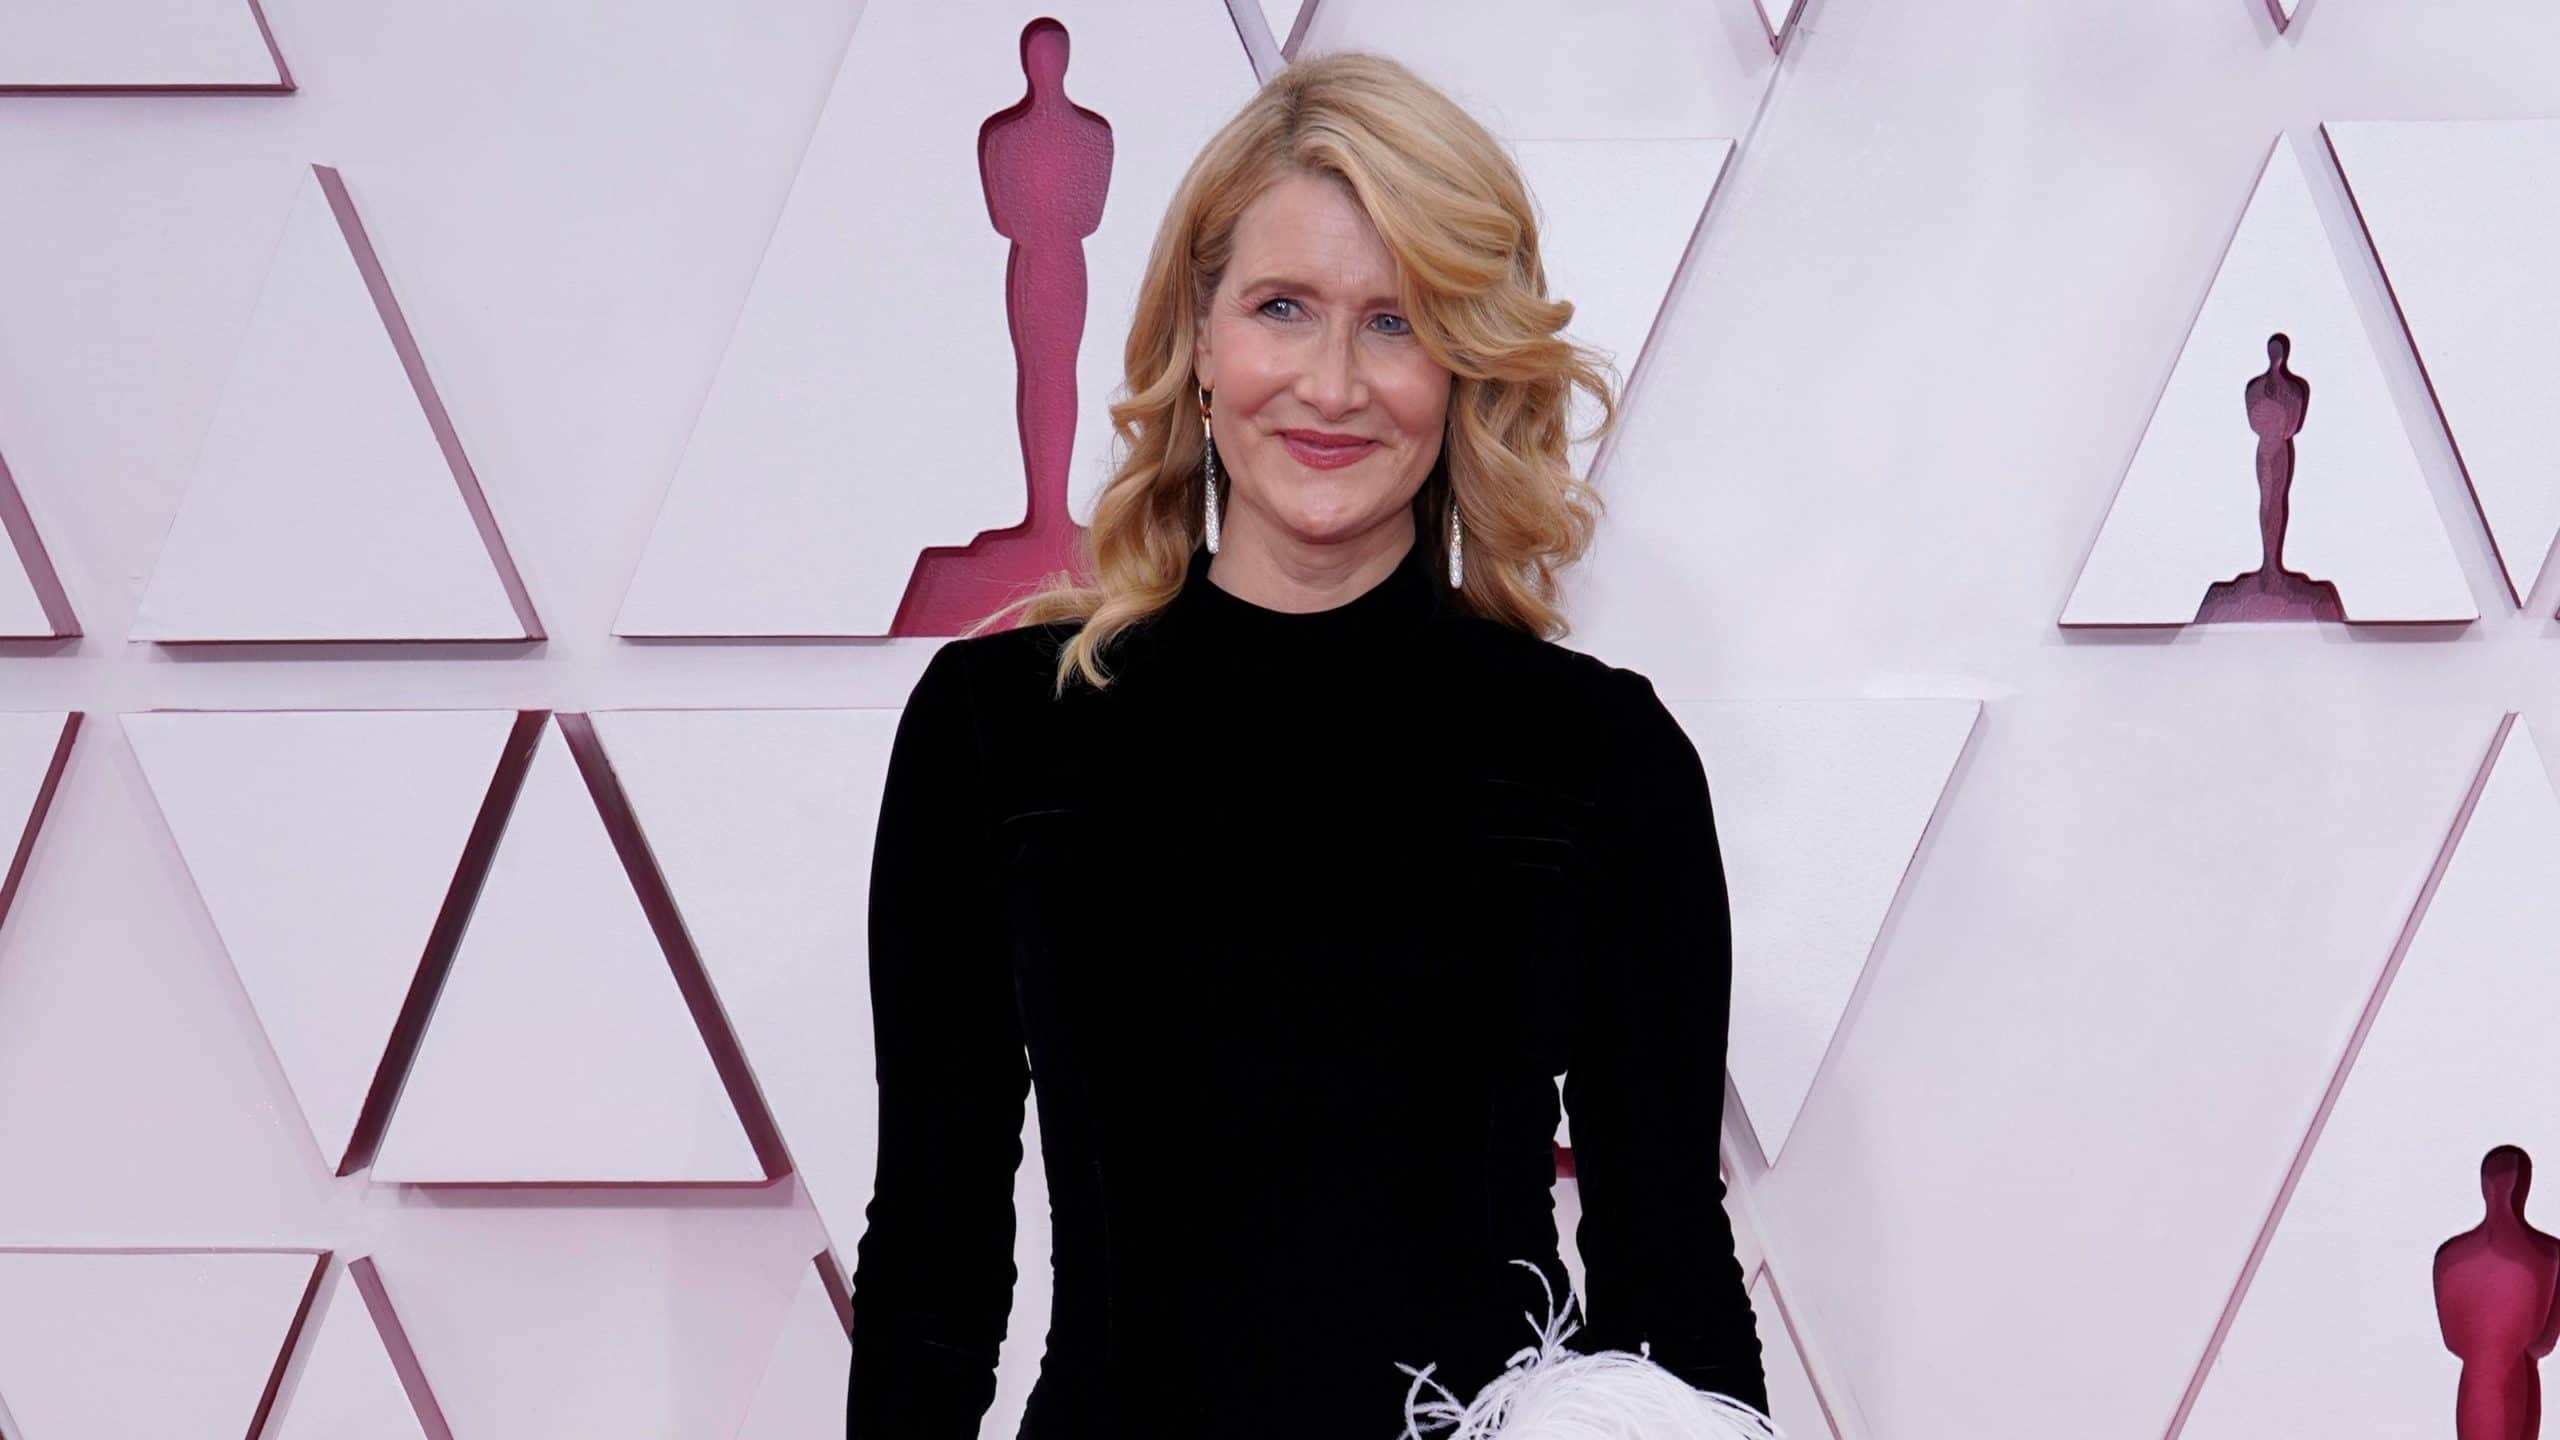 Laura Dern wearing diamond earrings and a black dress at the 2021 Oscars